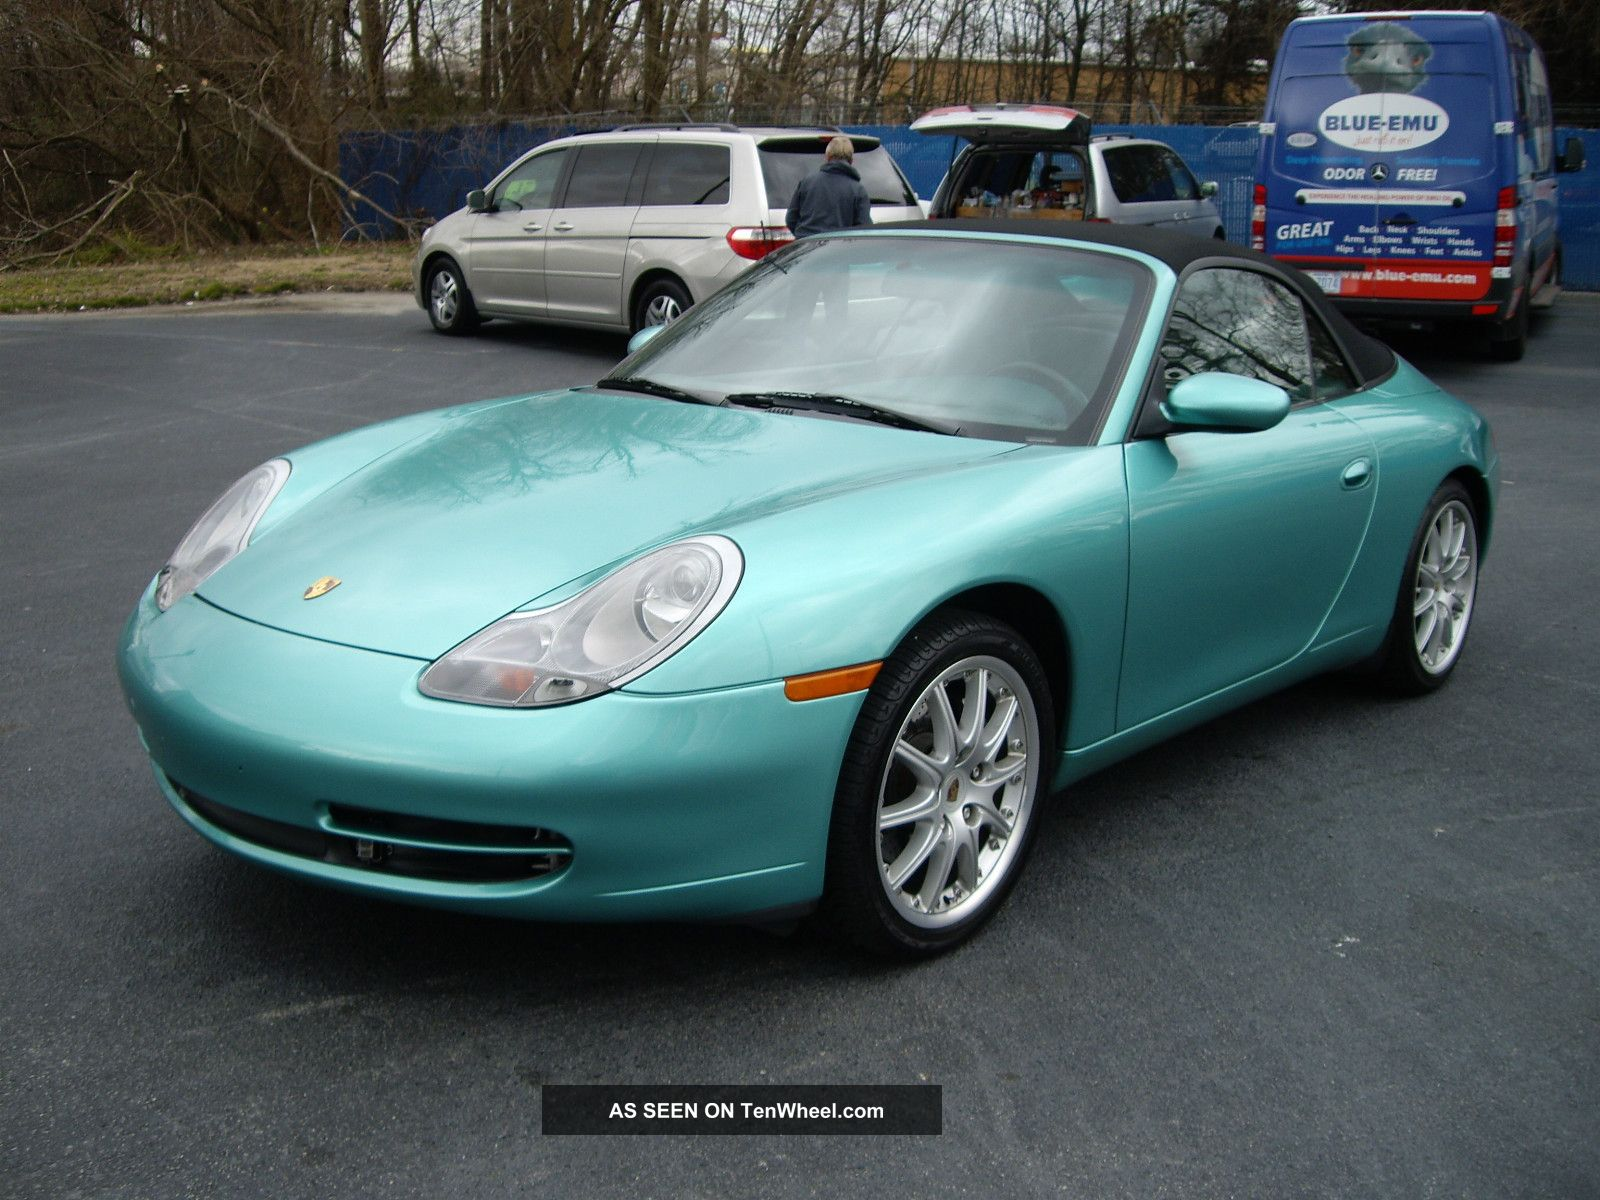 porsche boxster owners manual html with 60 2000 Porsche 911 Carrera 4 All Wheel Drive Navi Cabriolet Rare Green Met on Buick 2013 Lacrosse besides 46496 Spyder 986 A also Transmission Control 2012 Volkswagen Jetta Navigation System additionally How To Replace Ac Tube In A 2007 Porsche Boxster as well 27030 2000 ford mustang gt convertible 2   door 4   6l.